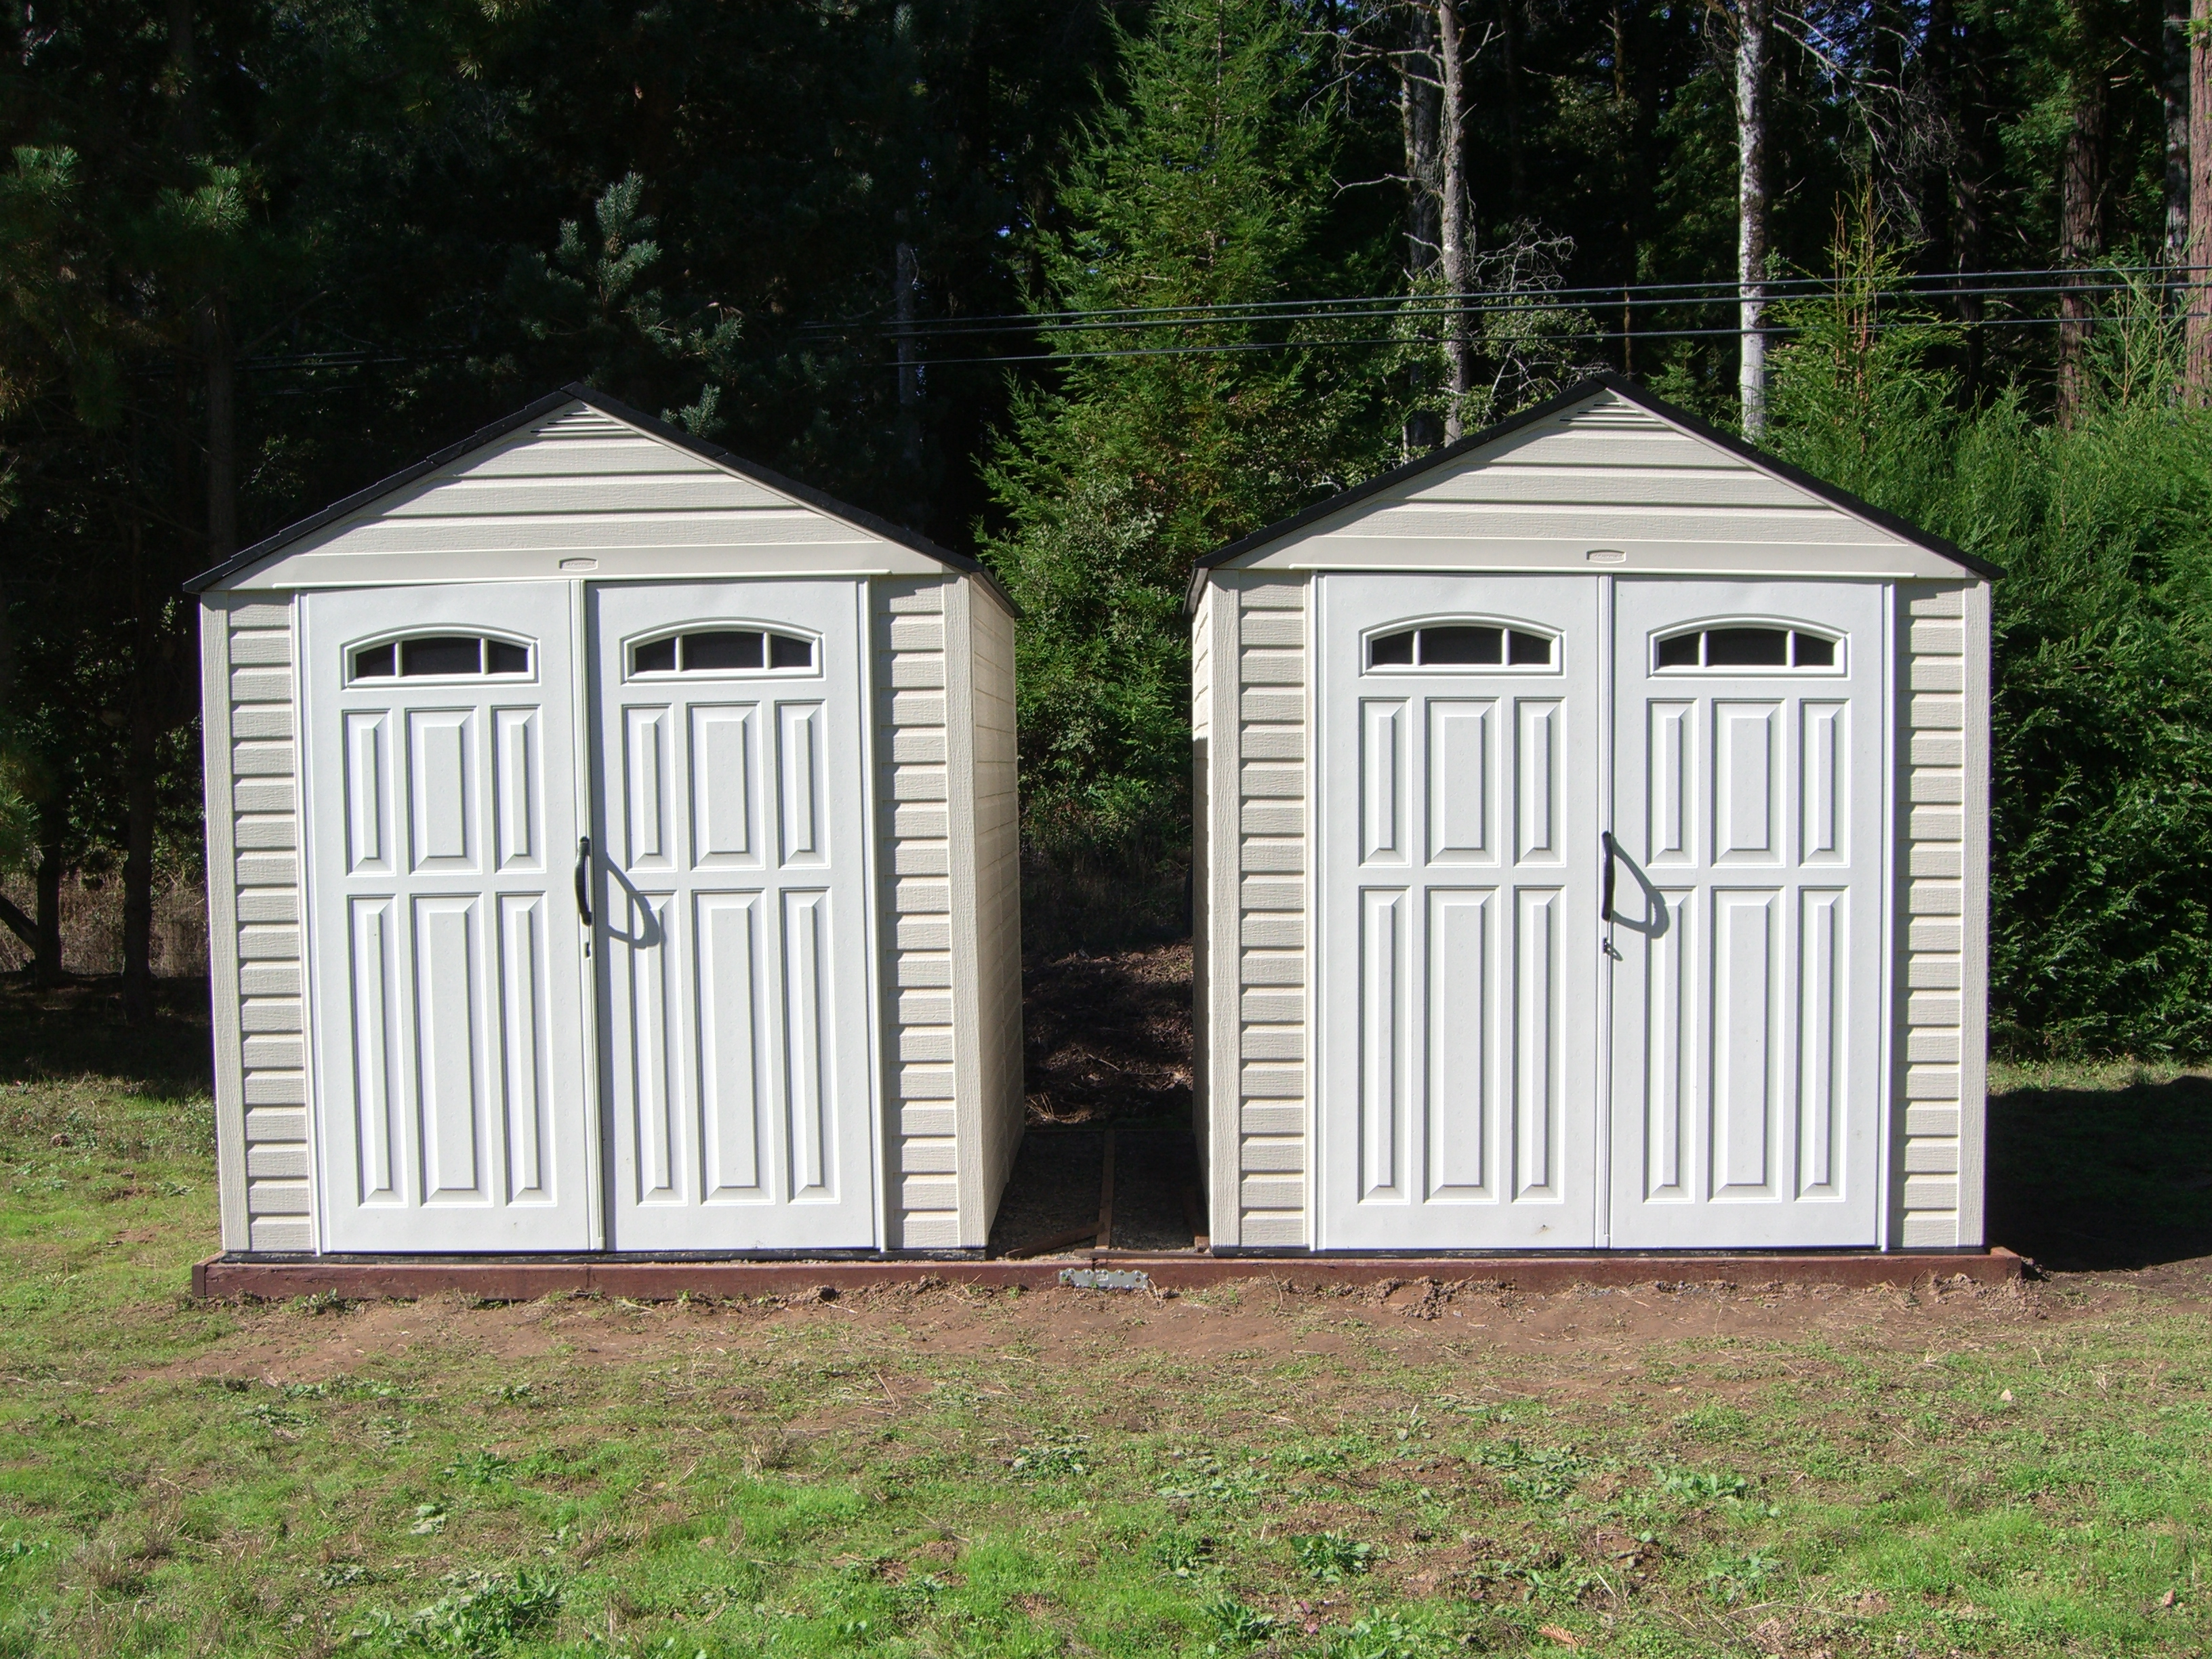 Lowes Outdoor Storage | Rubbermaid Storage Sheds | Modern Shed Kits